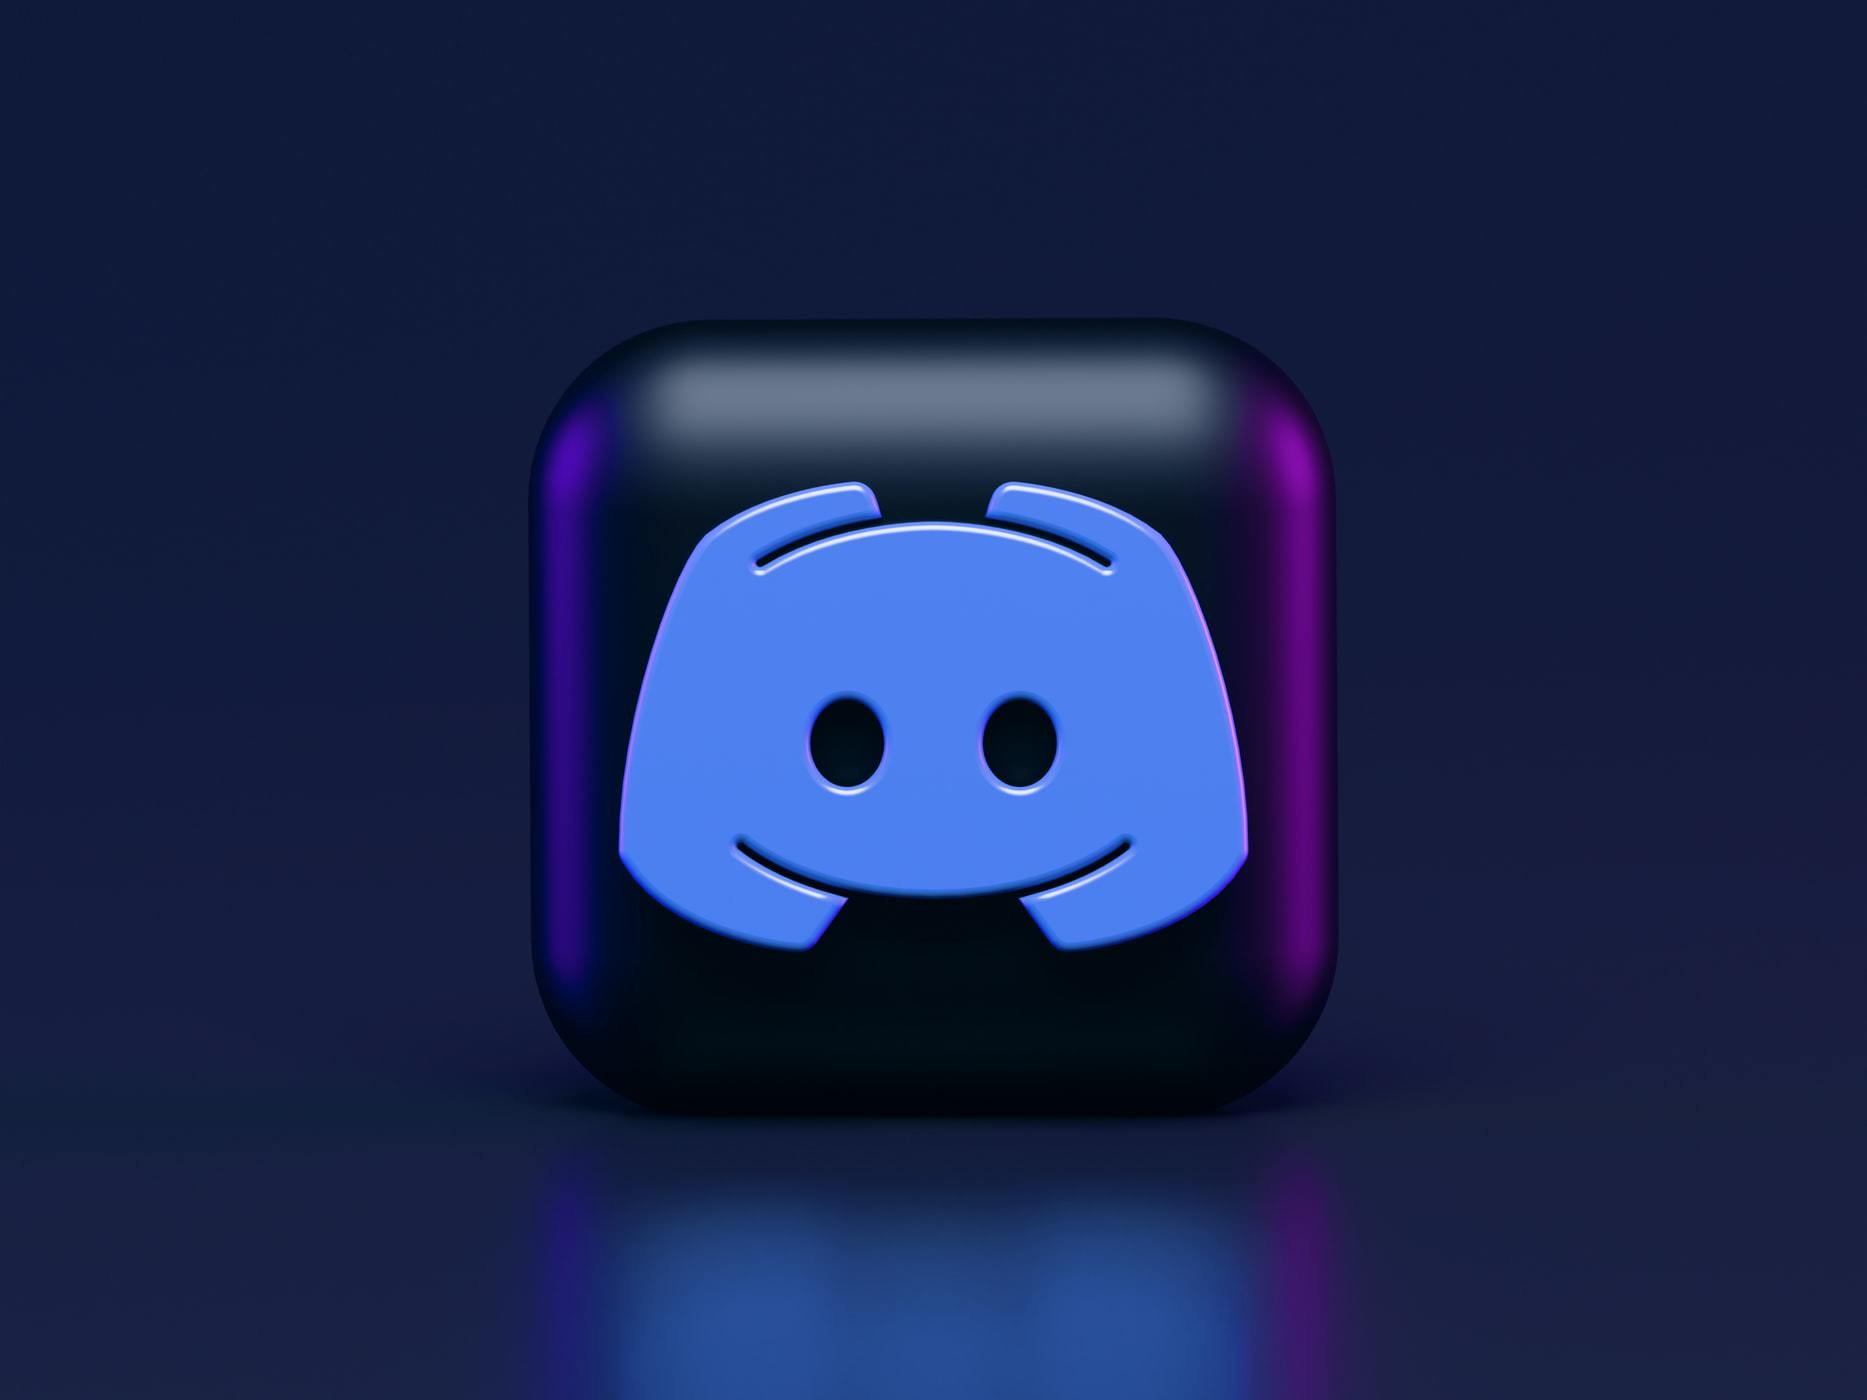 What's the best push to talk key for Discord?